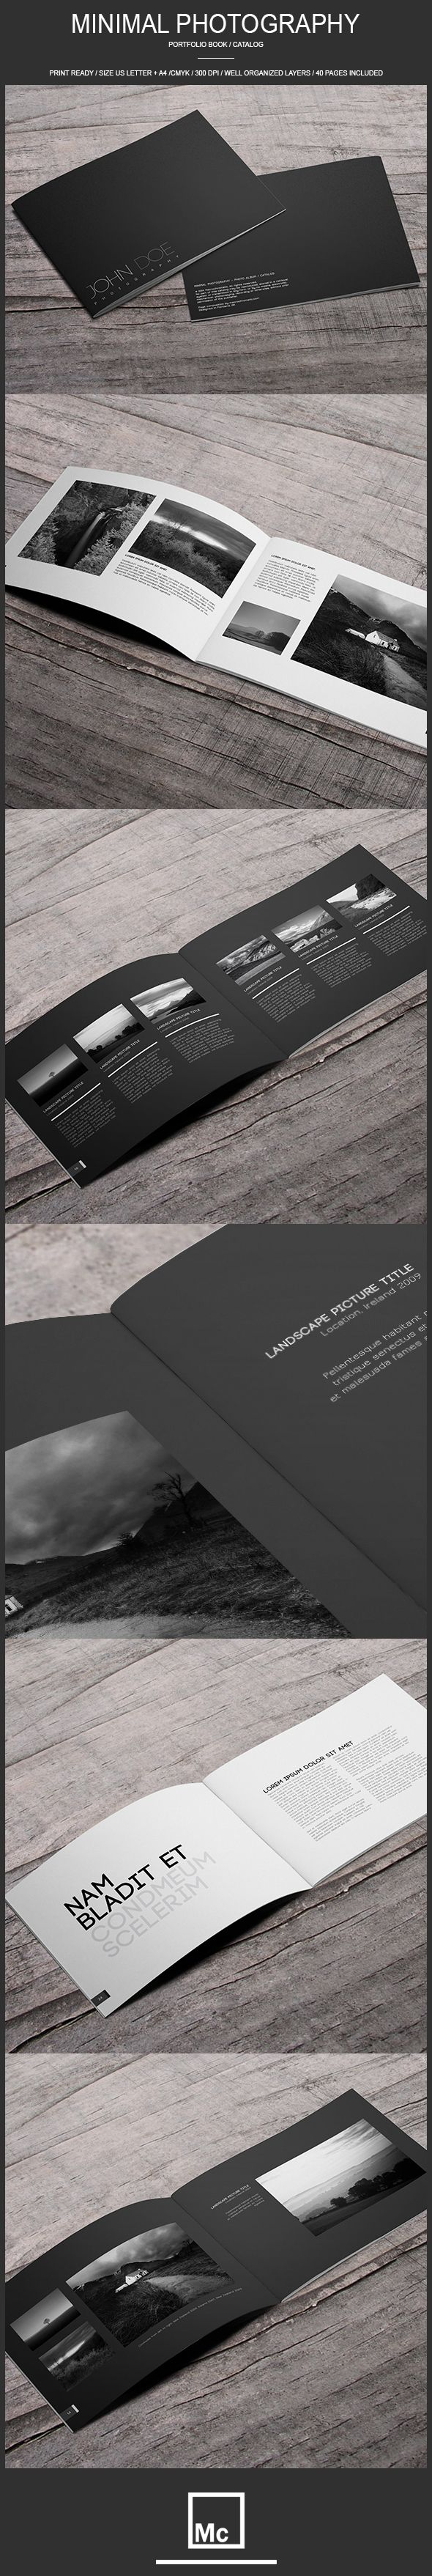 40 Page Minimal - Photography Portfolio Book by Macrochromatic, via Behance